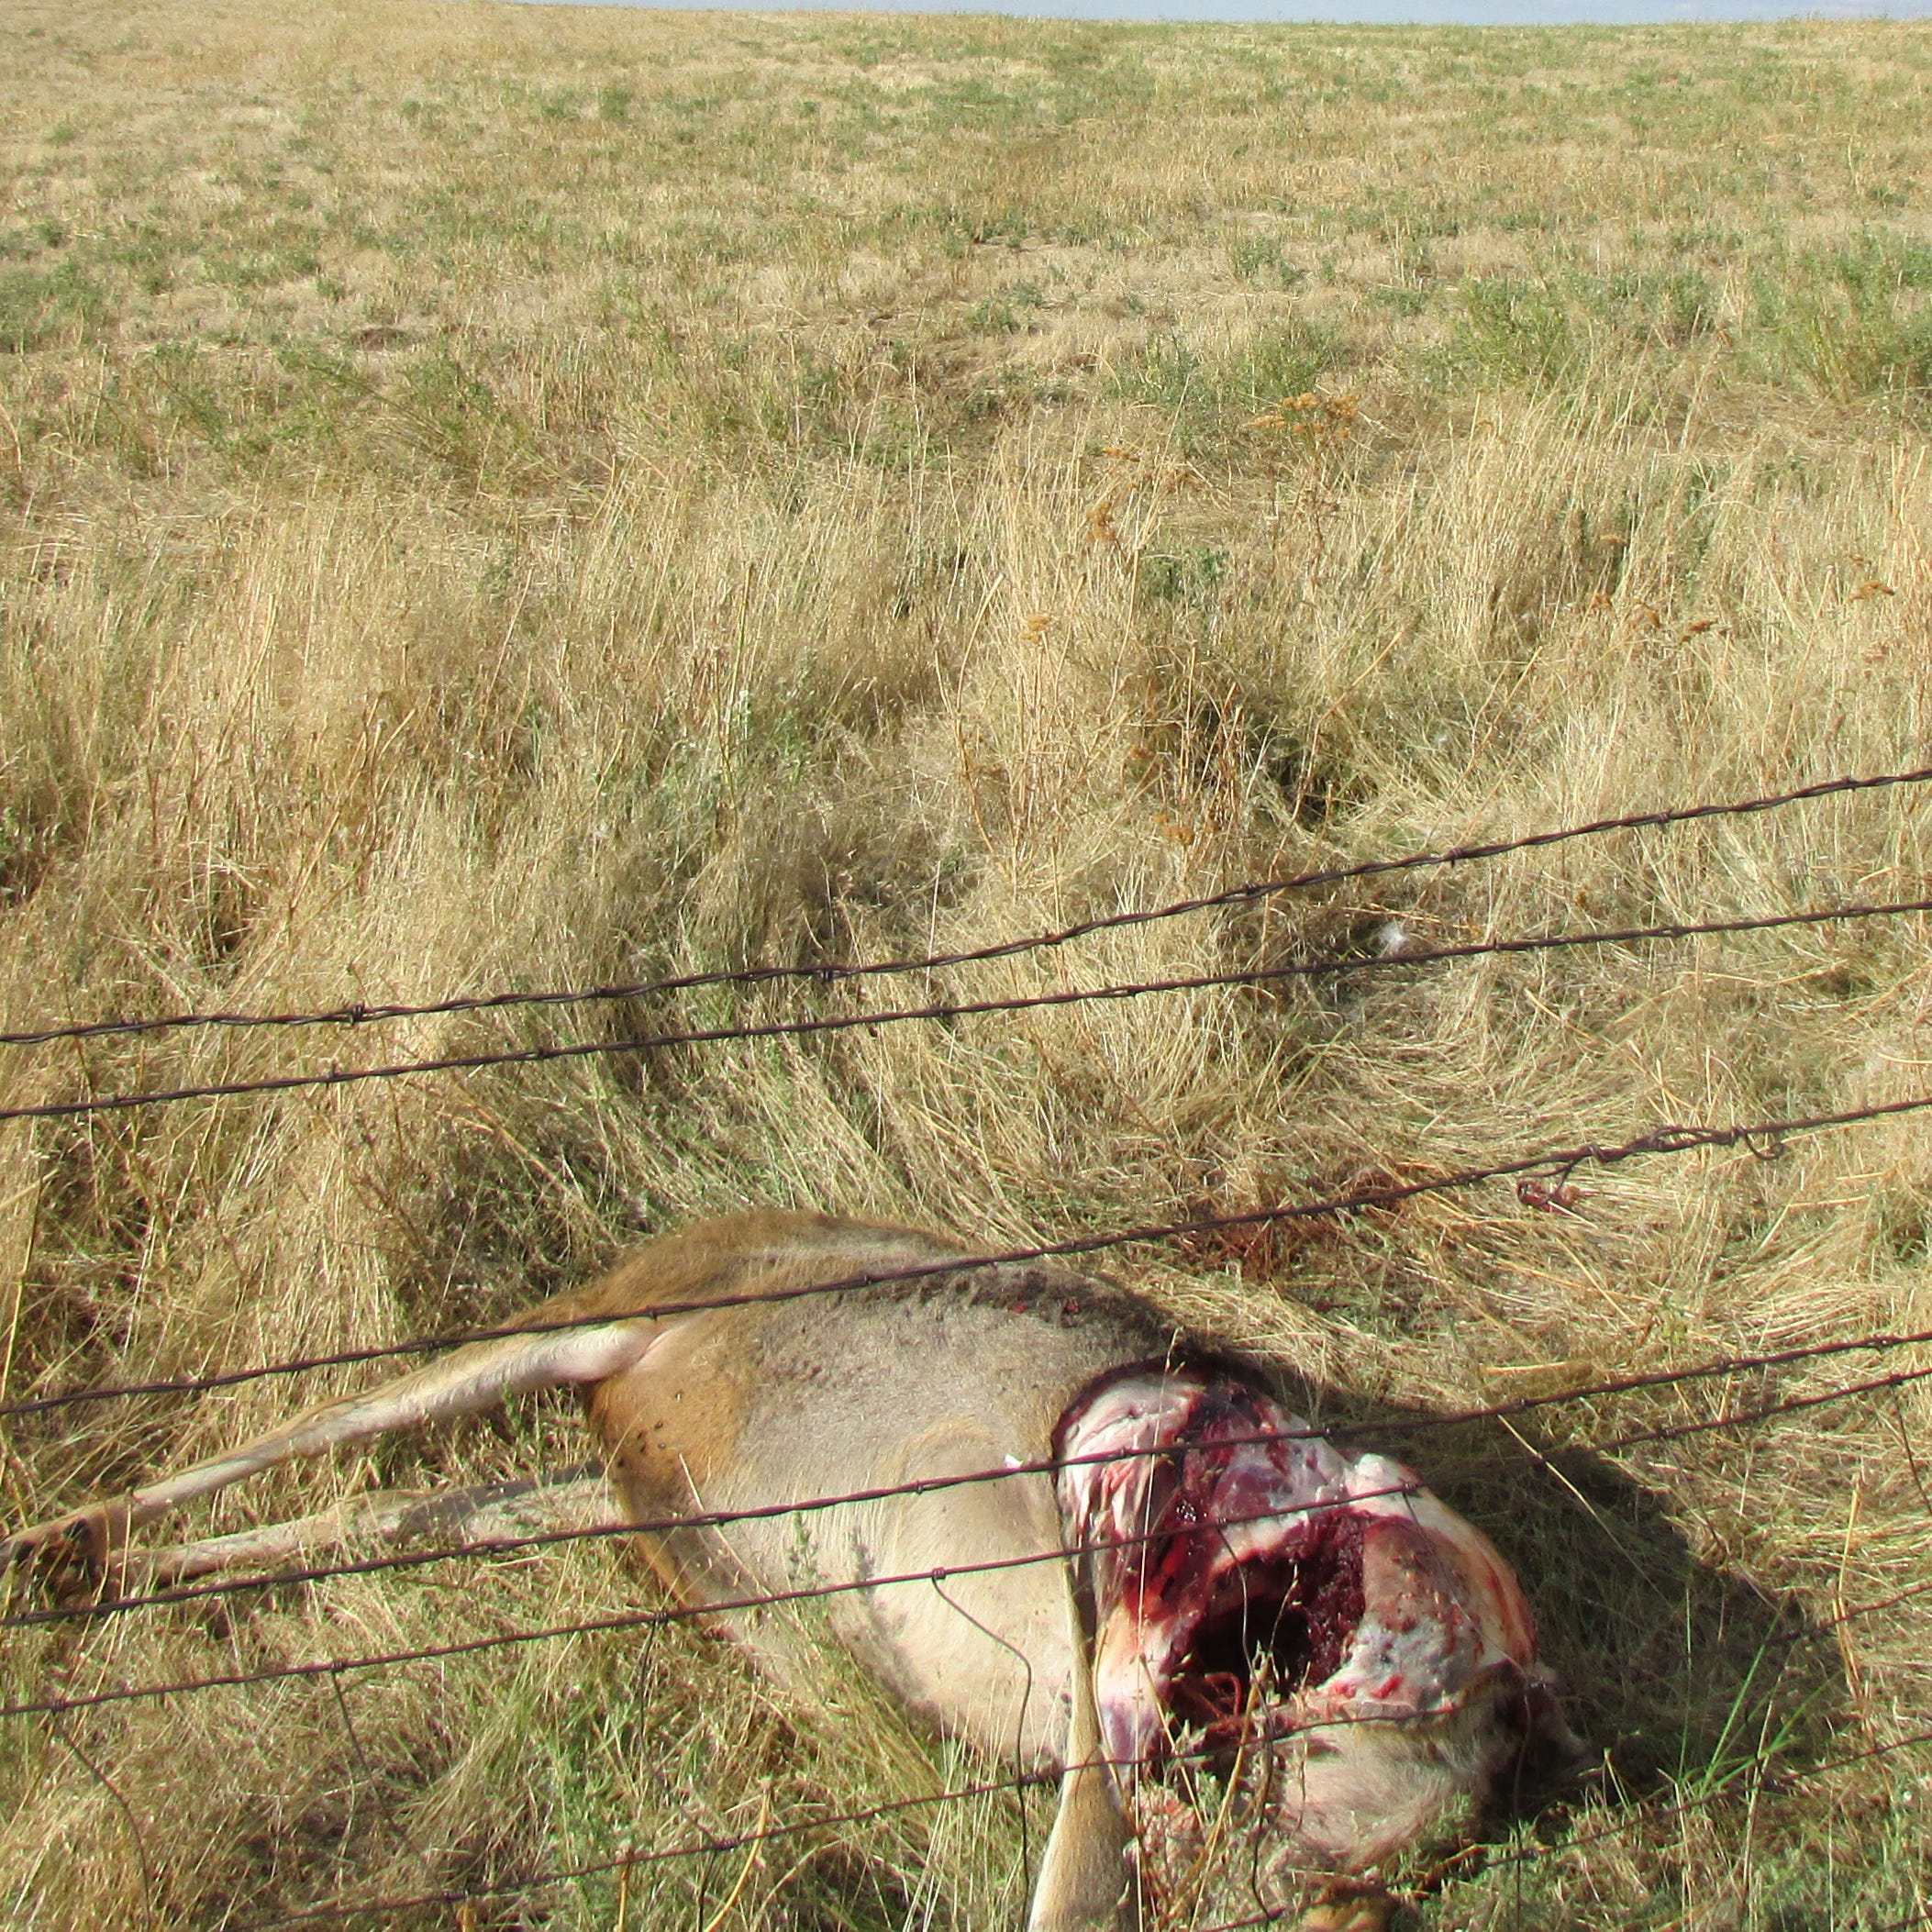 Poached deer found south of Great Falls